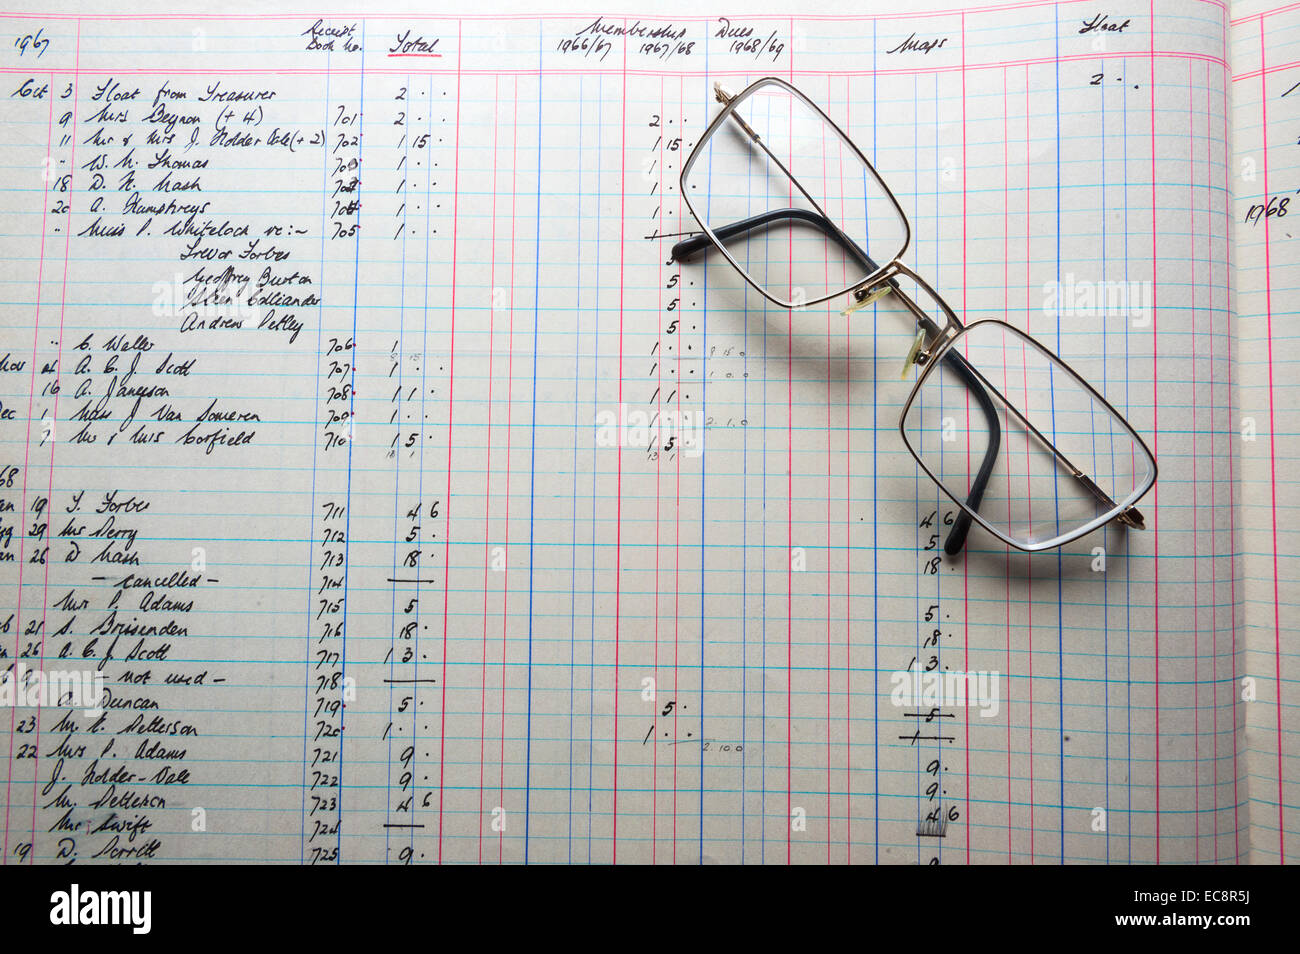 An old accounts ledger, handwritten figures in pounds shillings and ...